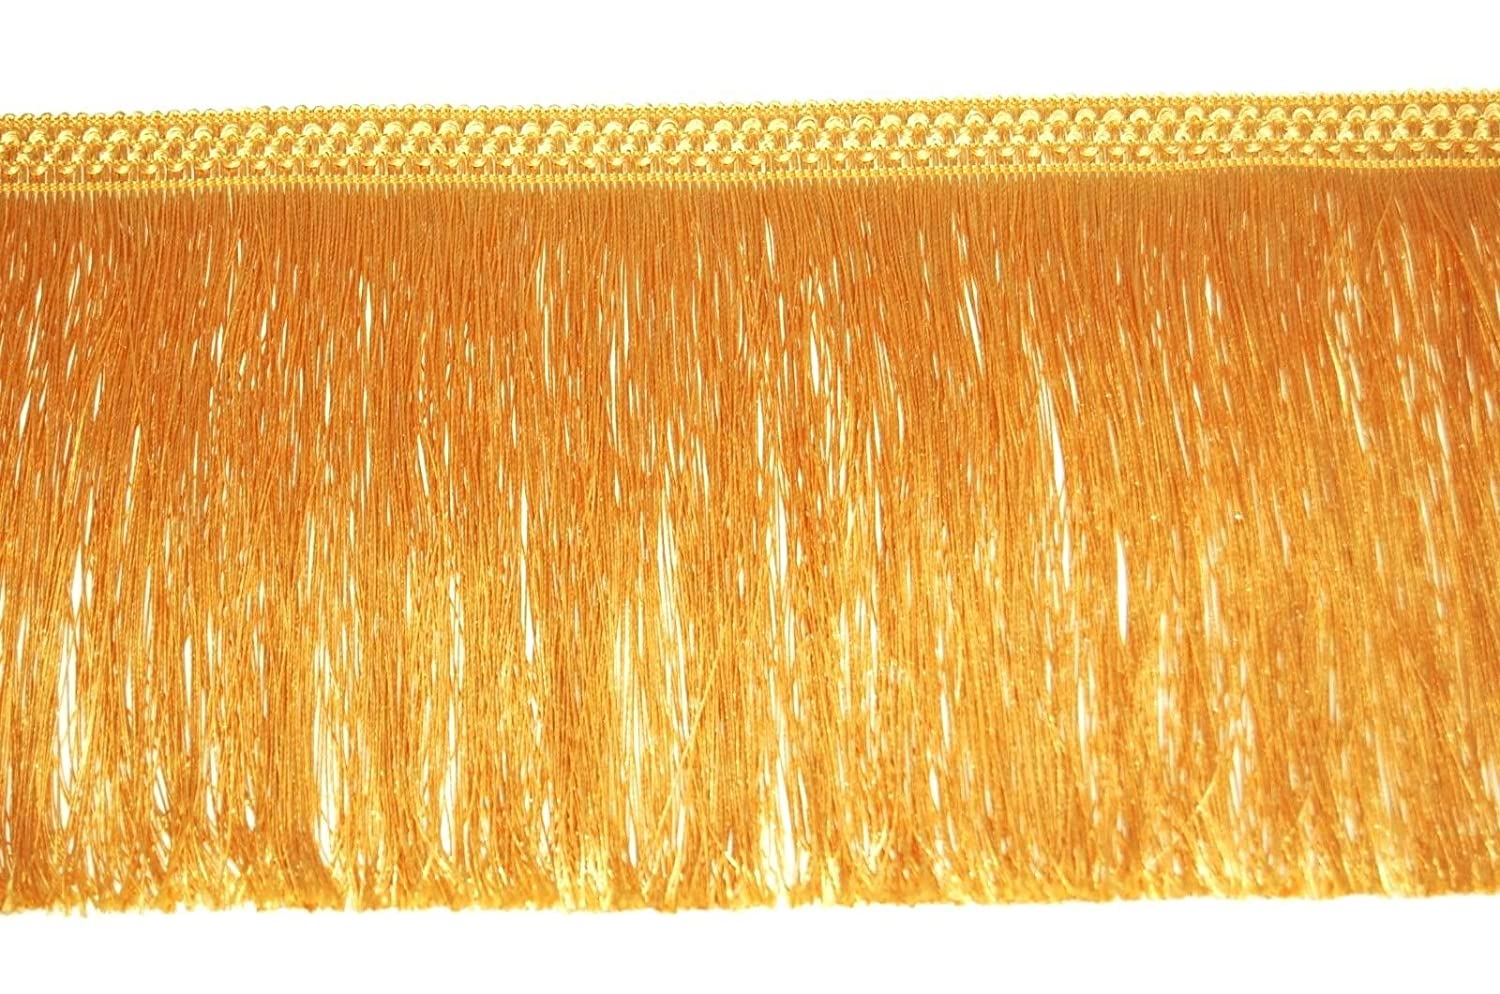 1metre FRINGE 20CM WIDE TASSEL TRIM LACE, AVAILABLE IN GOLD, SILVER, BLACK, WHITE (GOLD)